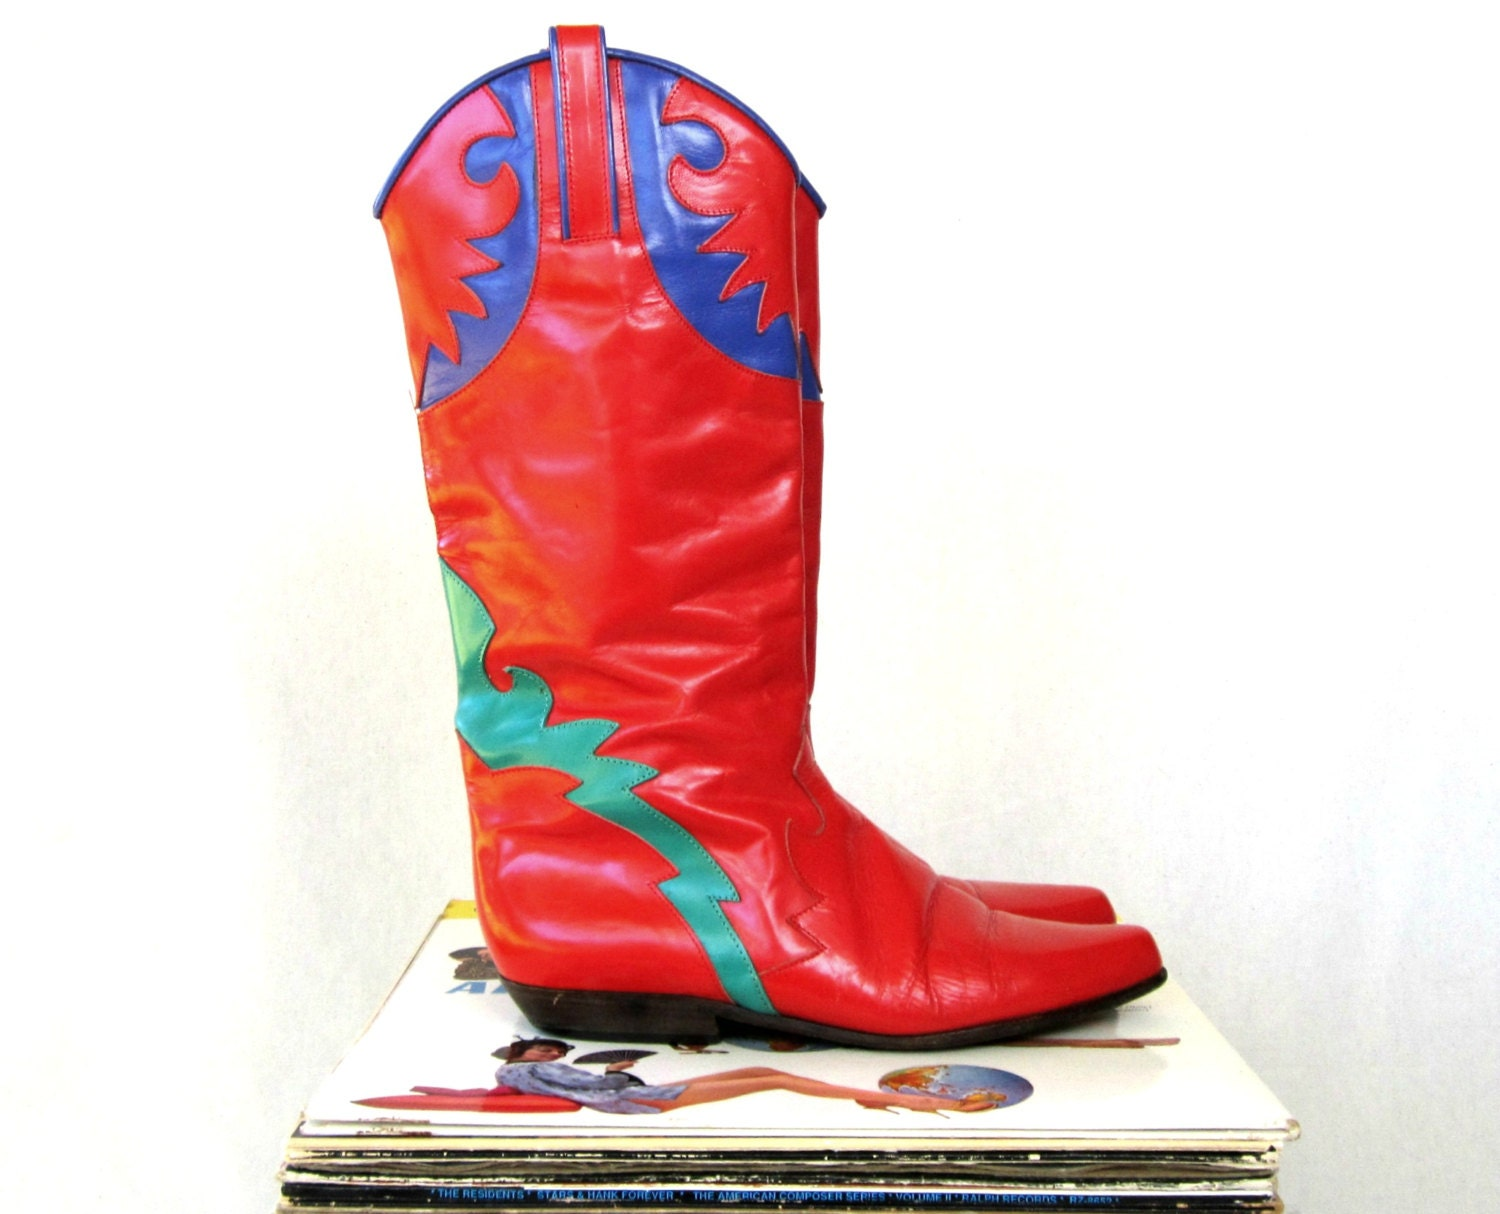 Vintage Leather Boots / Colorblock Shoes / Charles David / Made in Italy / Womens Size 7 1/2 - lovethatlingers